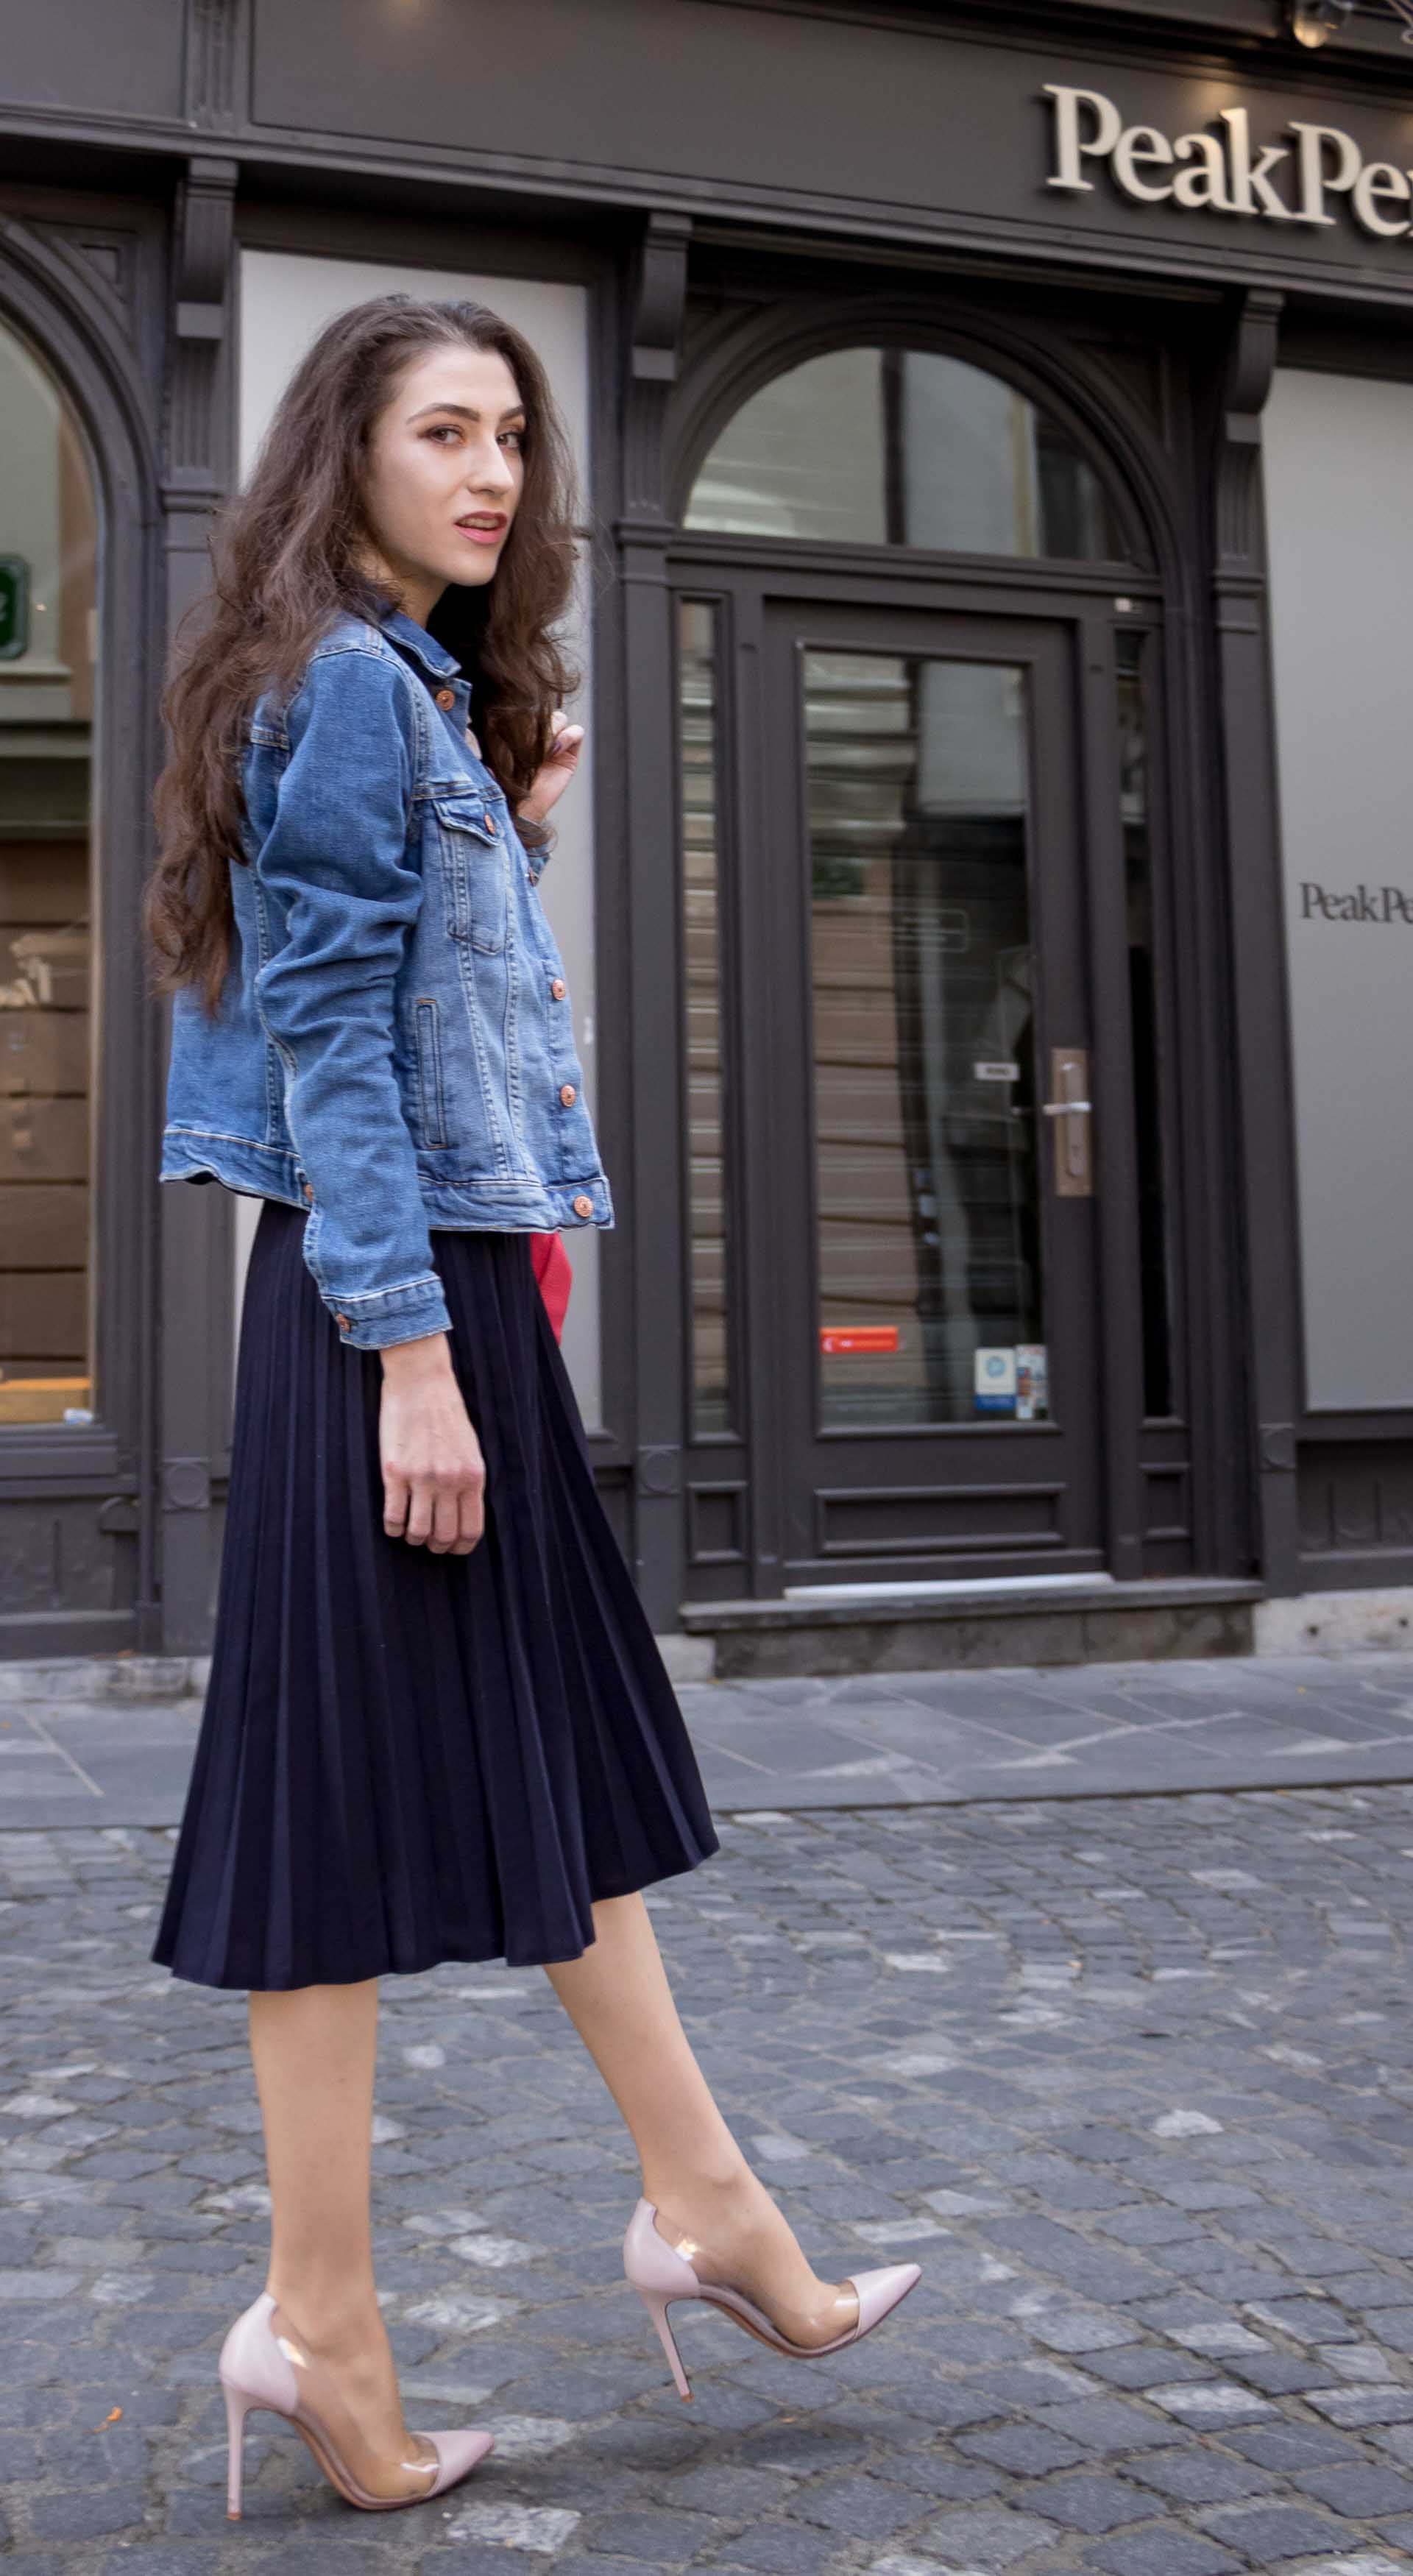 Veronika Lipar Fashion Blogger of Brunette from Wall Street dressed in H&M denim jacket, floral blouse, midi pleated skirt, Gianvito Rossi plexi pumps, pink top handle bag on cold summer morning